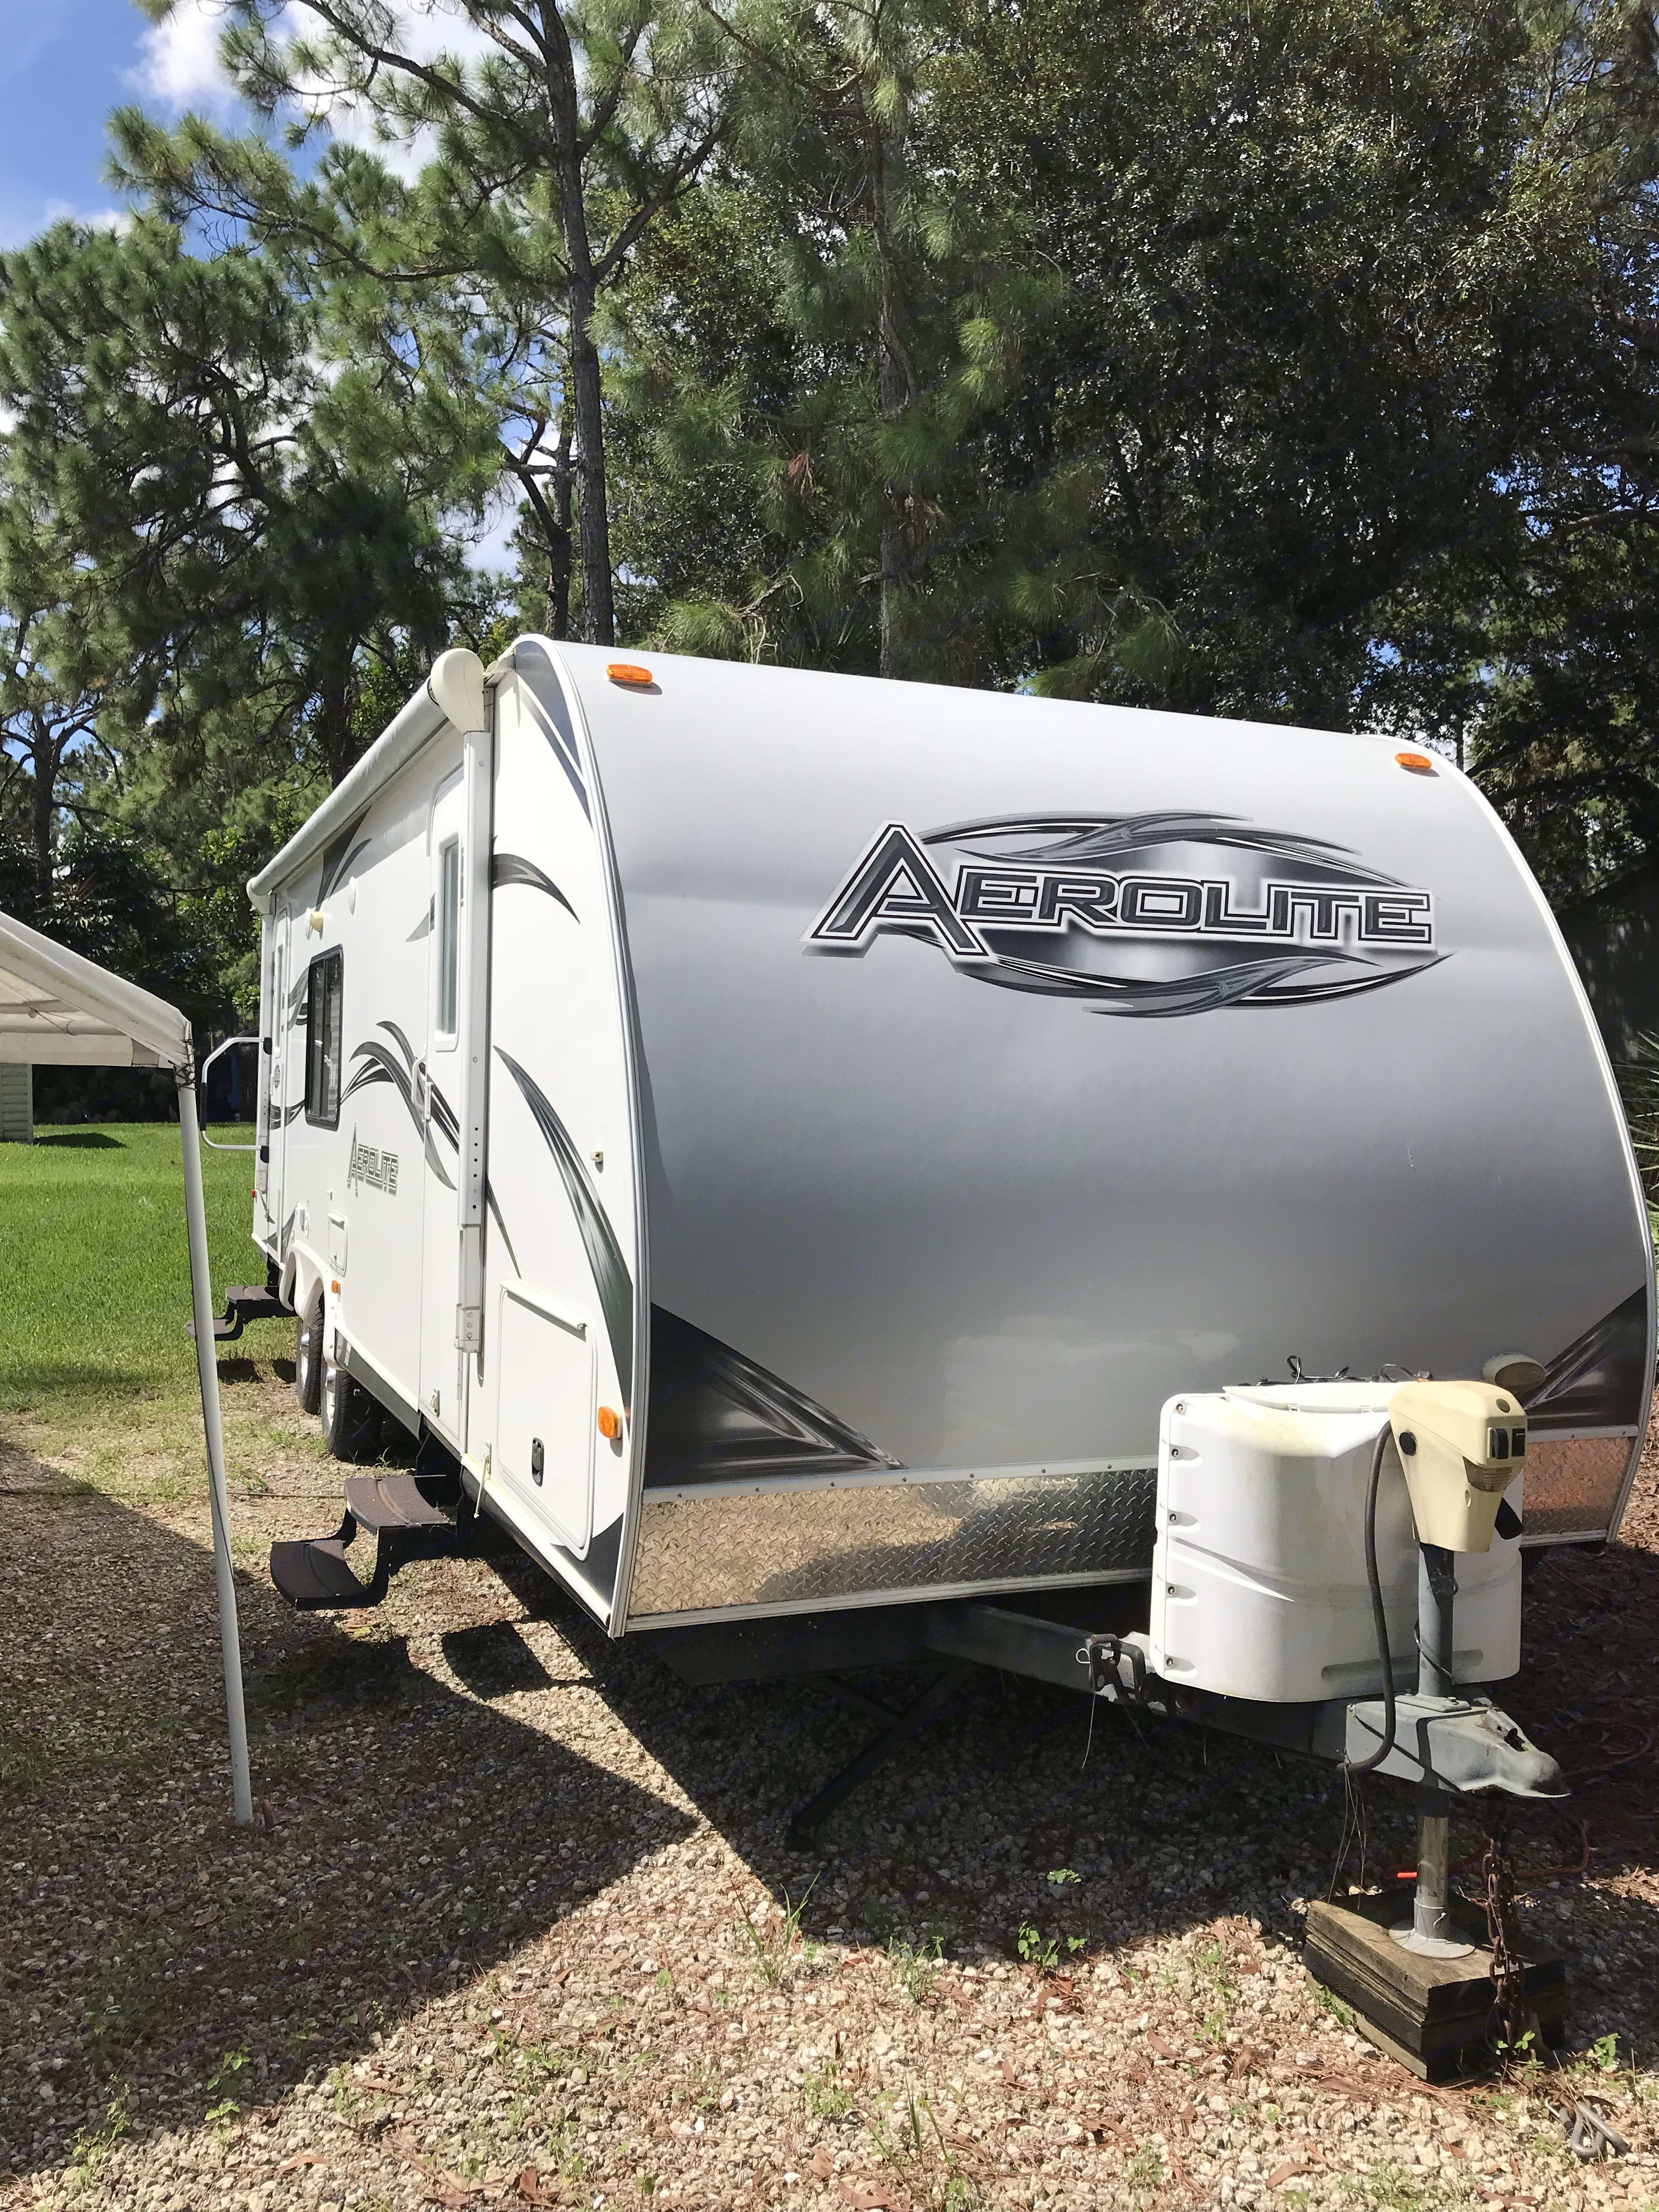 Just a picture of the front of the camper. Dutchmen Aerolite 2011